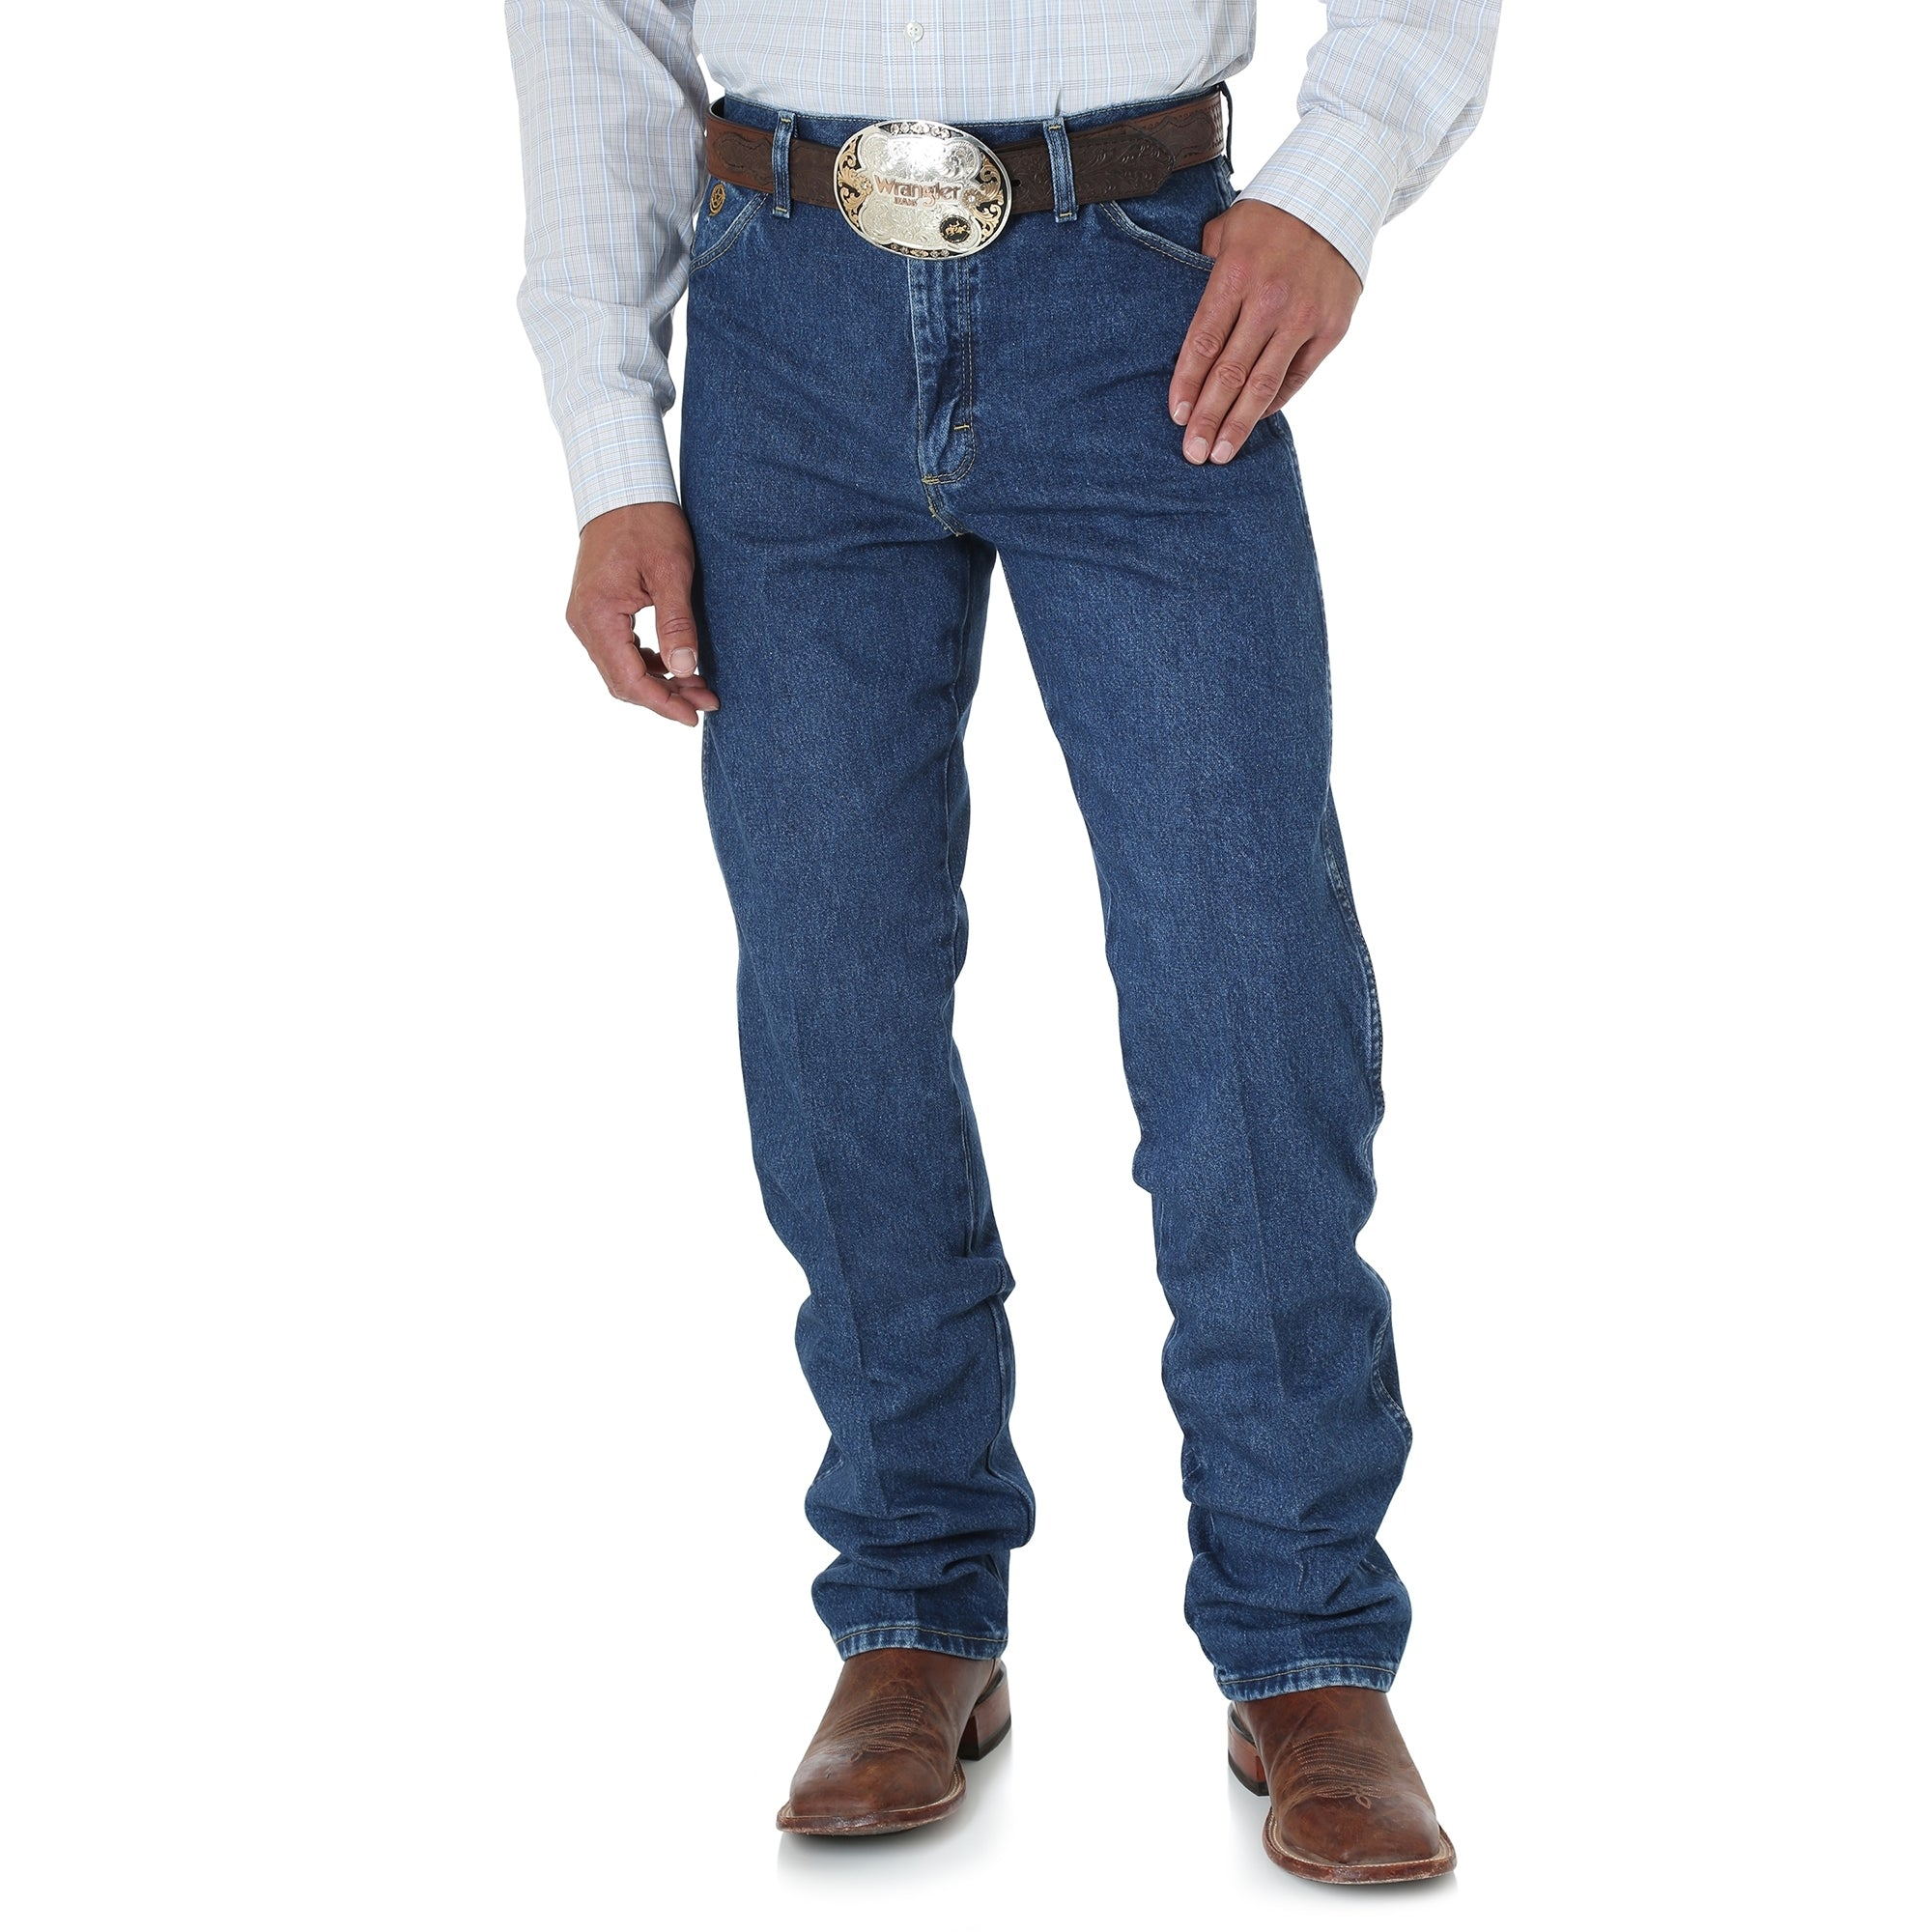 Men's Wrangler George Strait Cowboy Cut Original Fit Jean #13MGSHD